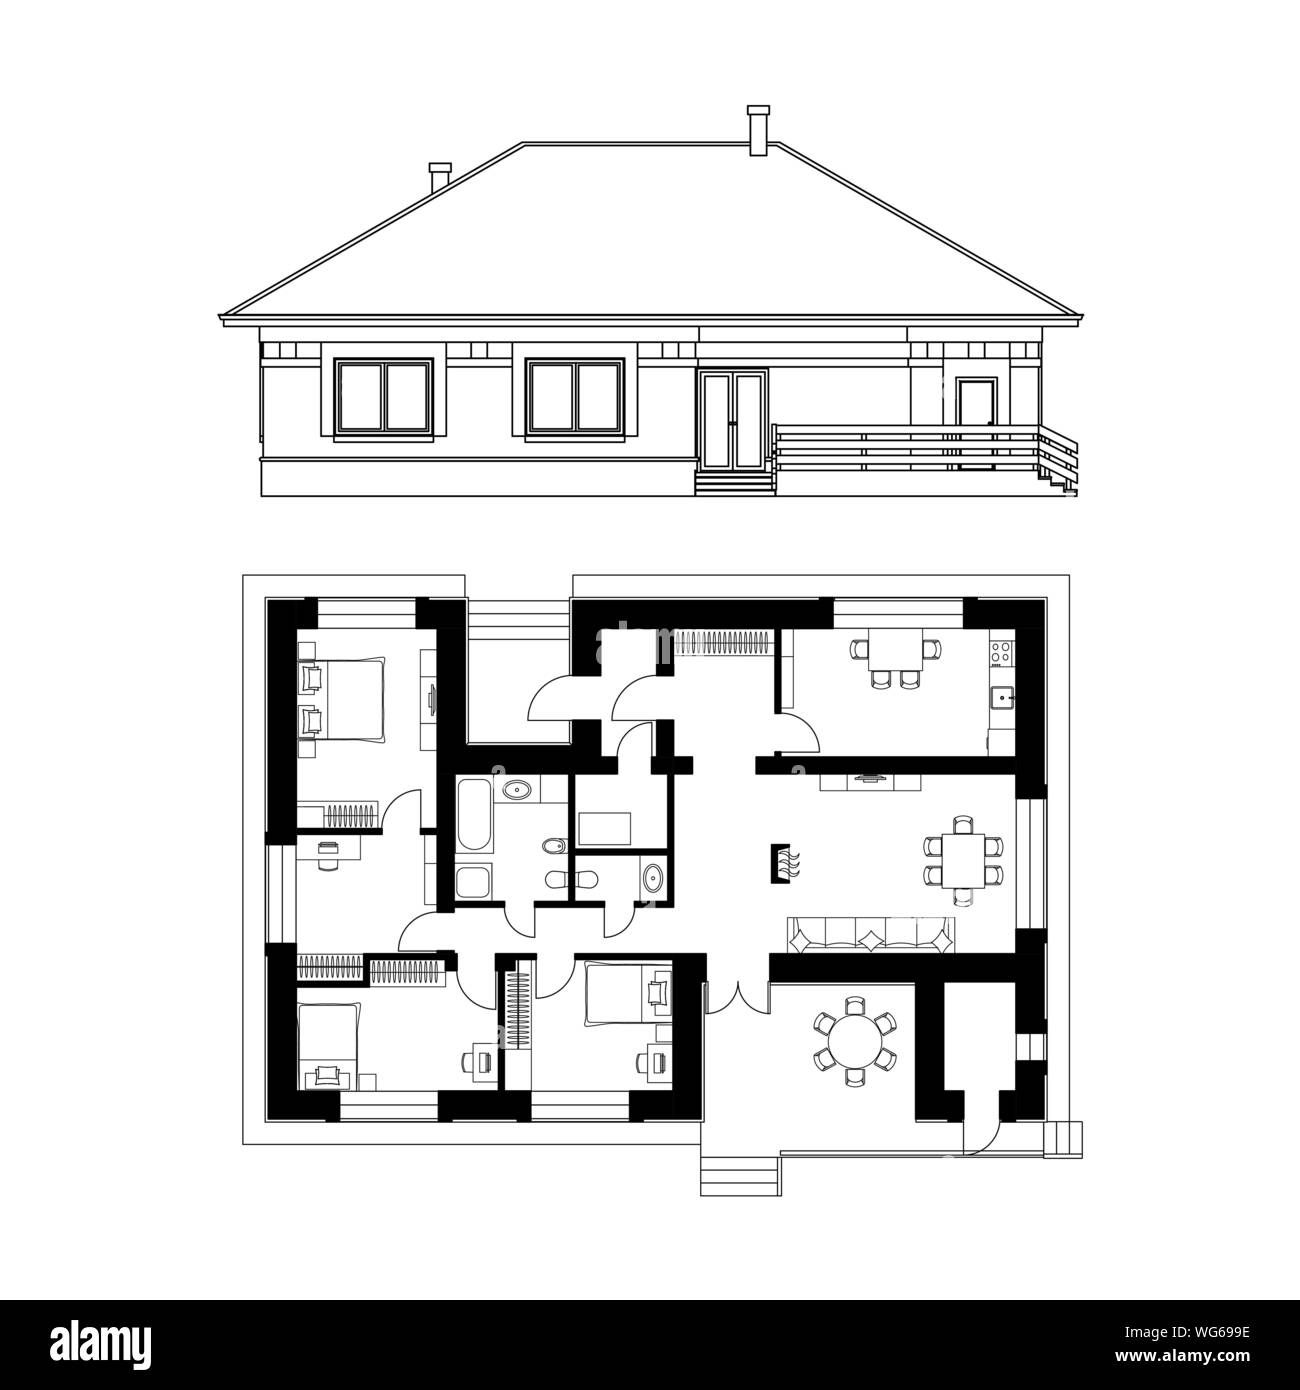 Architectural Project Of A House Drawing Of The Facade And Floor